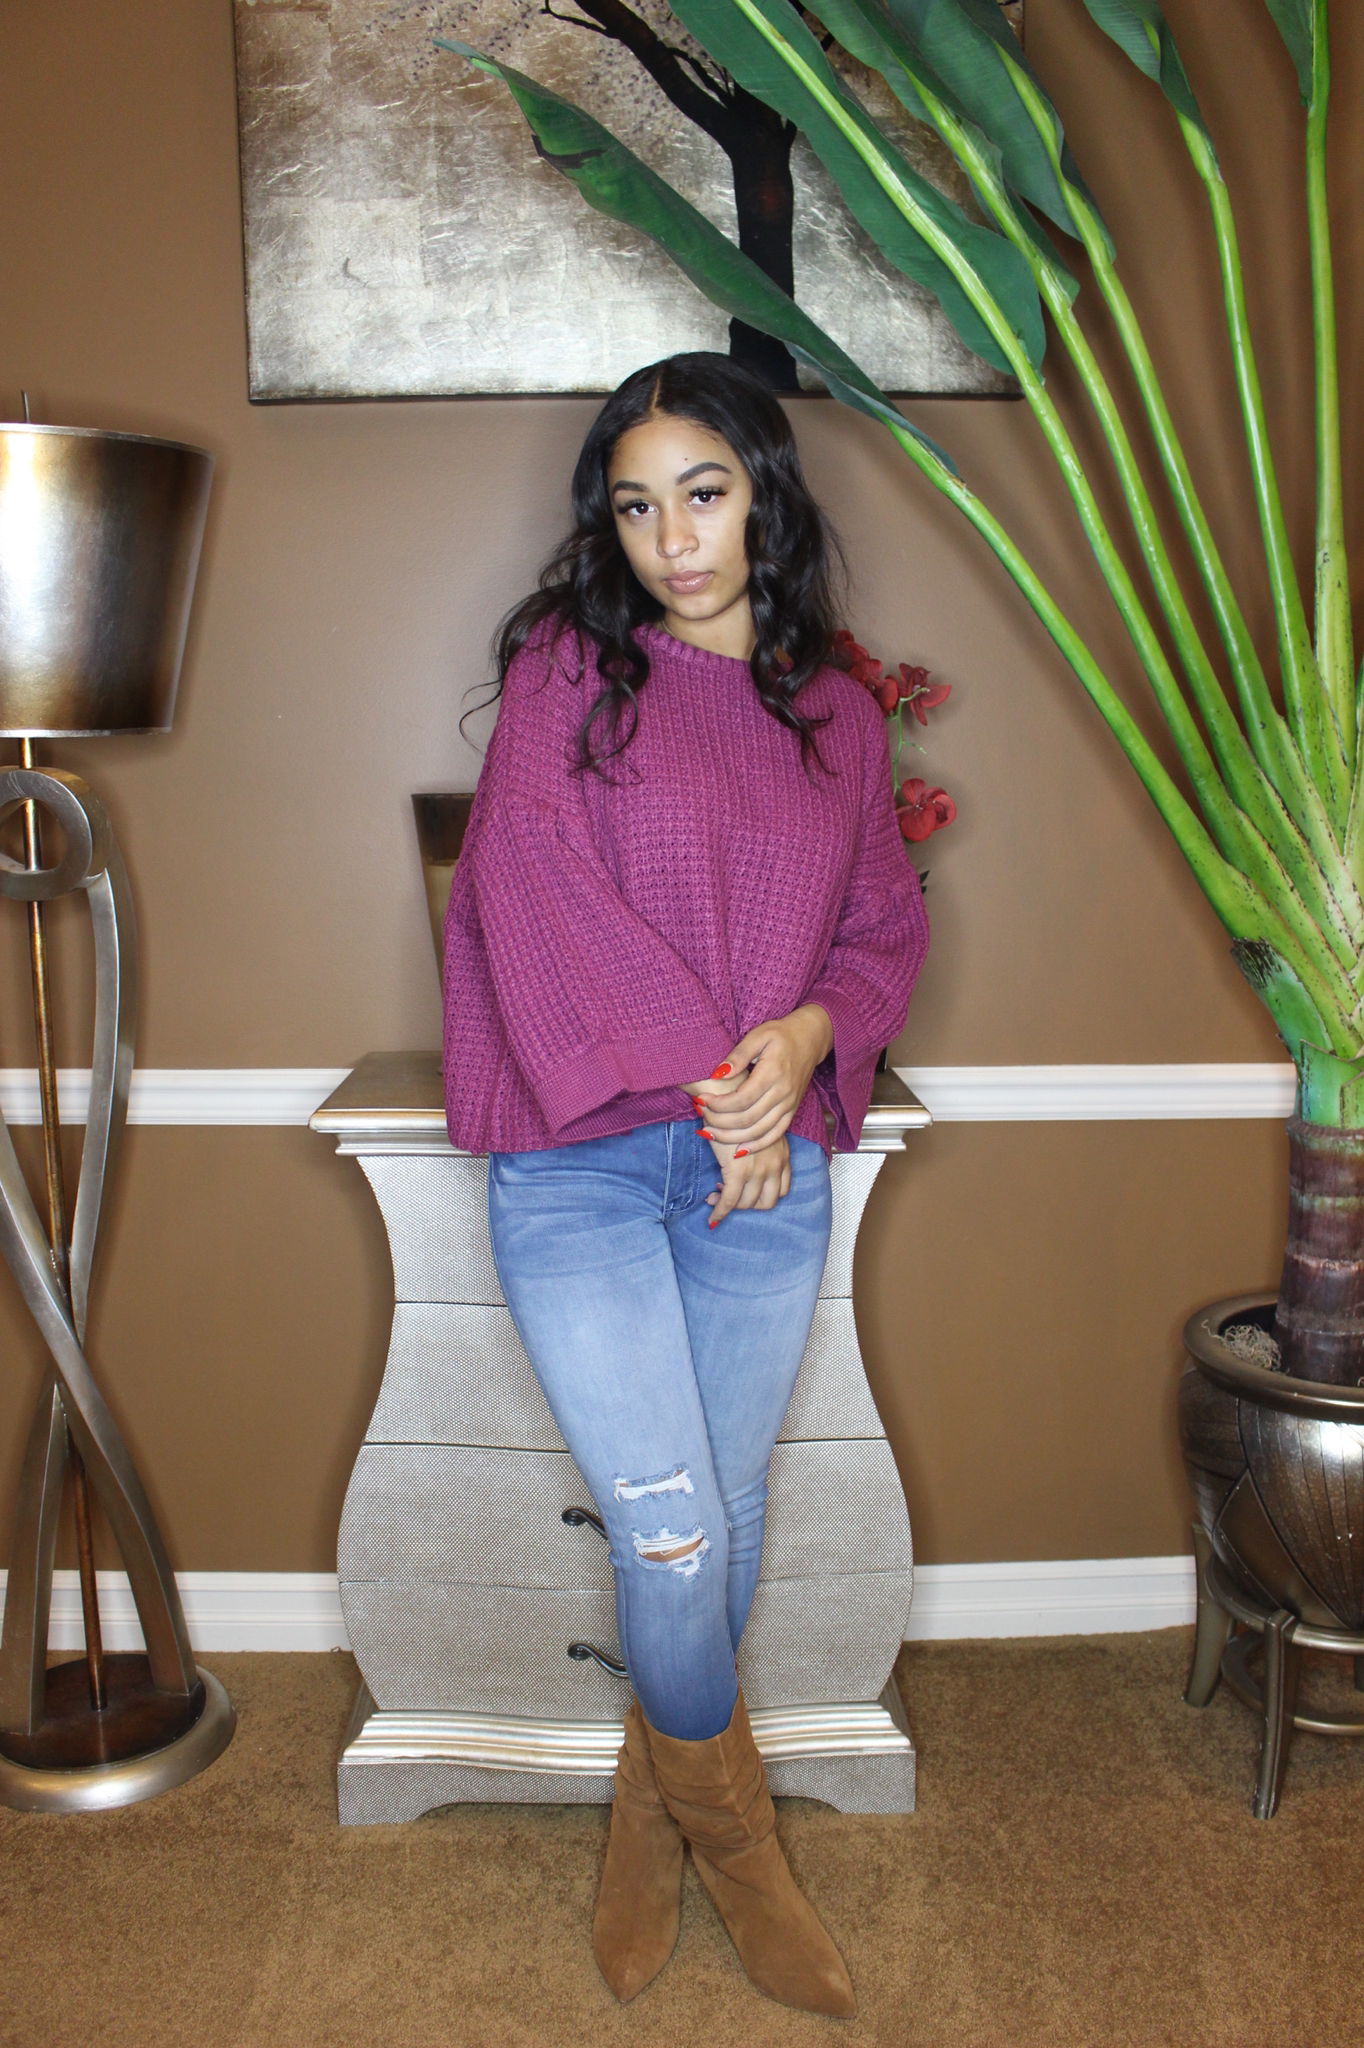 Berry Lush Sweater UPSW694-BERRYLUSH